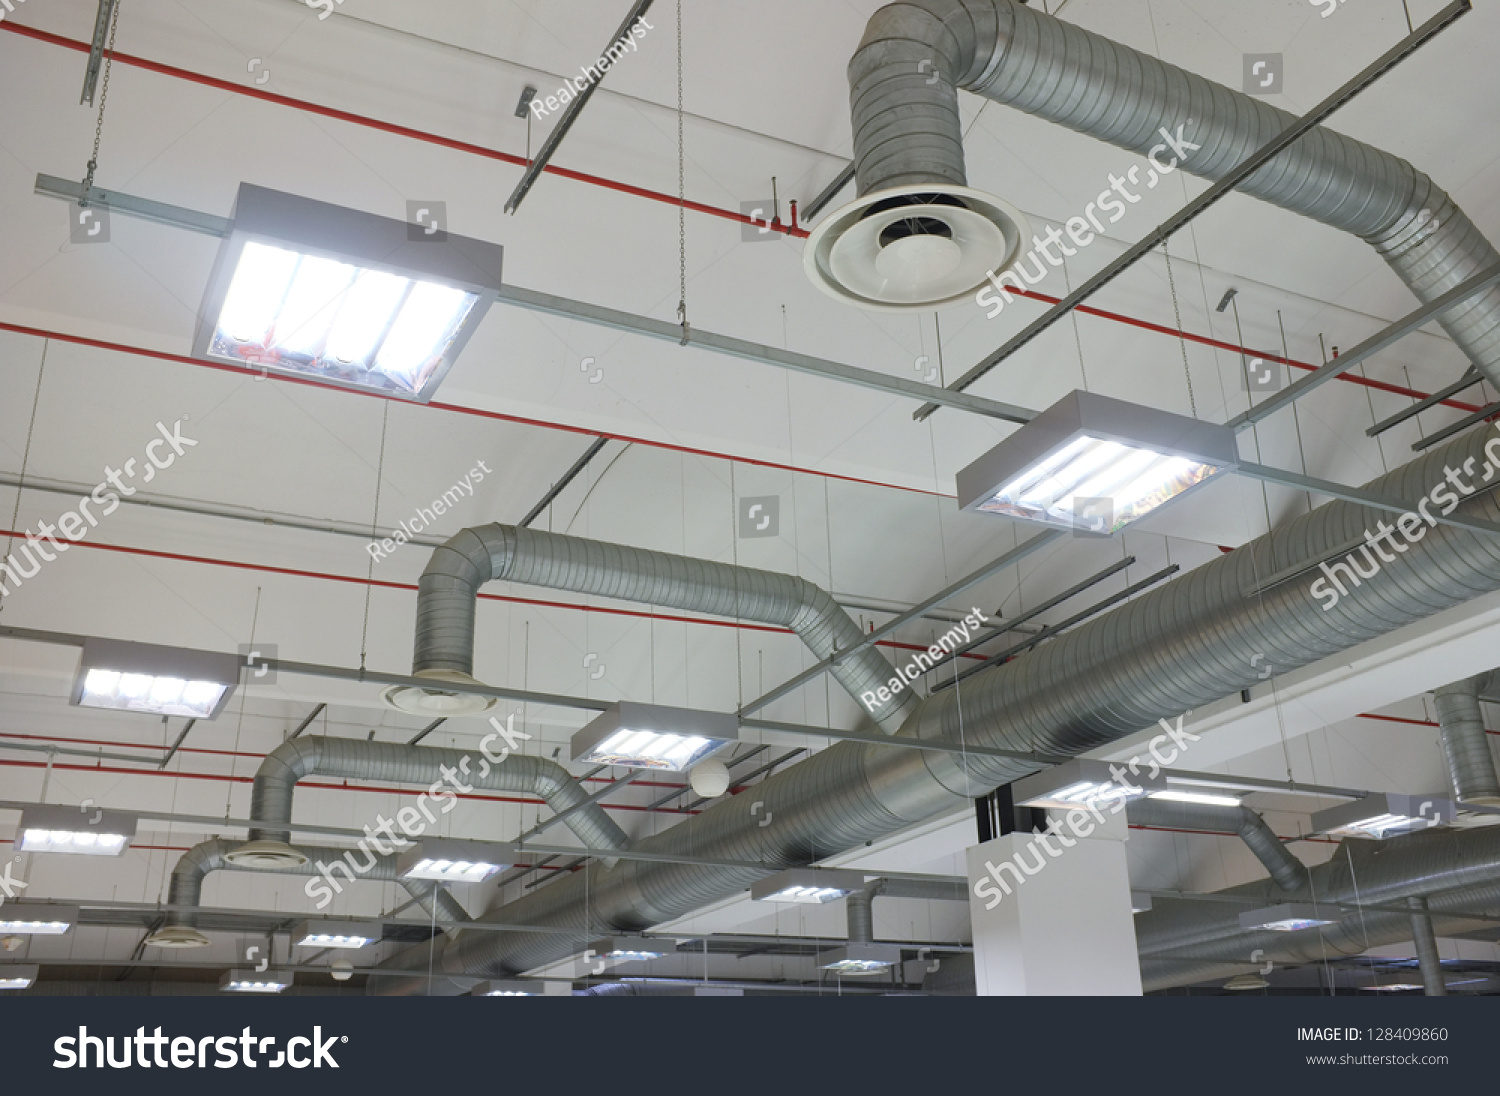 Industrial Air Conditioning System And Air Diffusers Stock Photo  #71443E